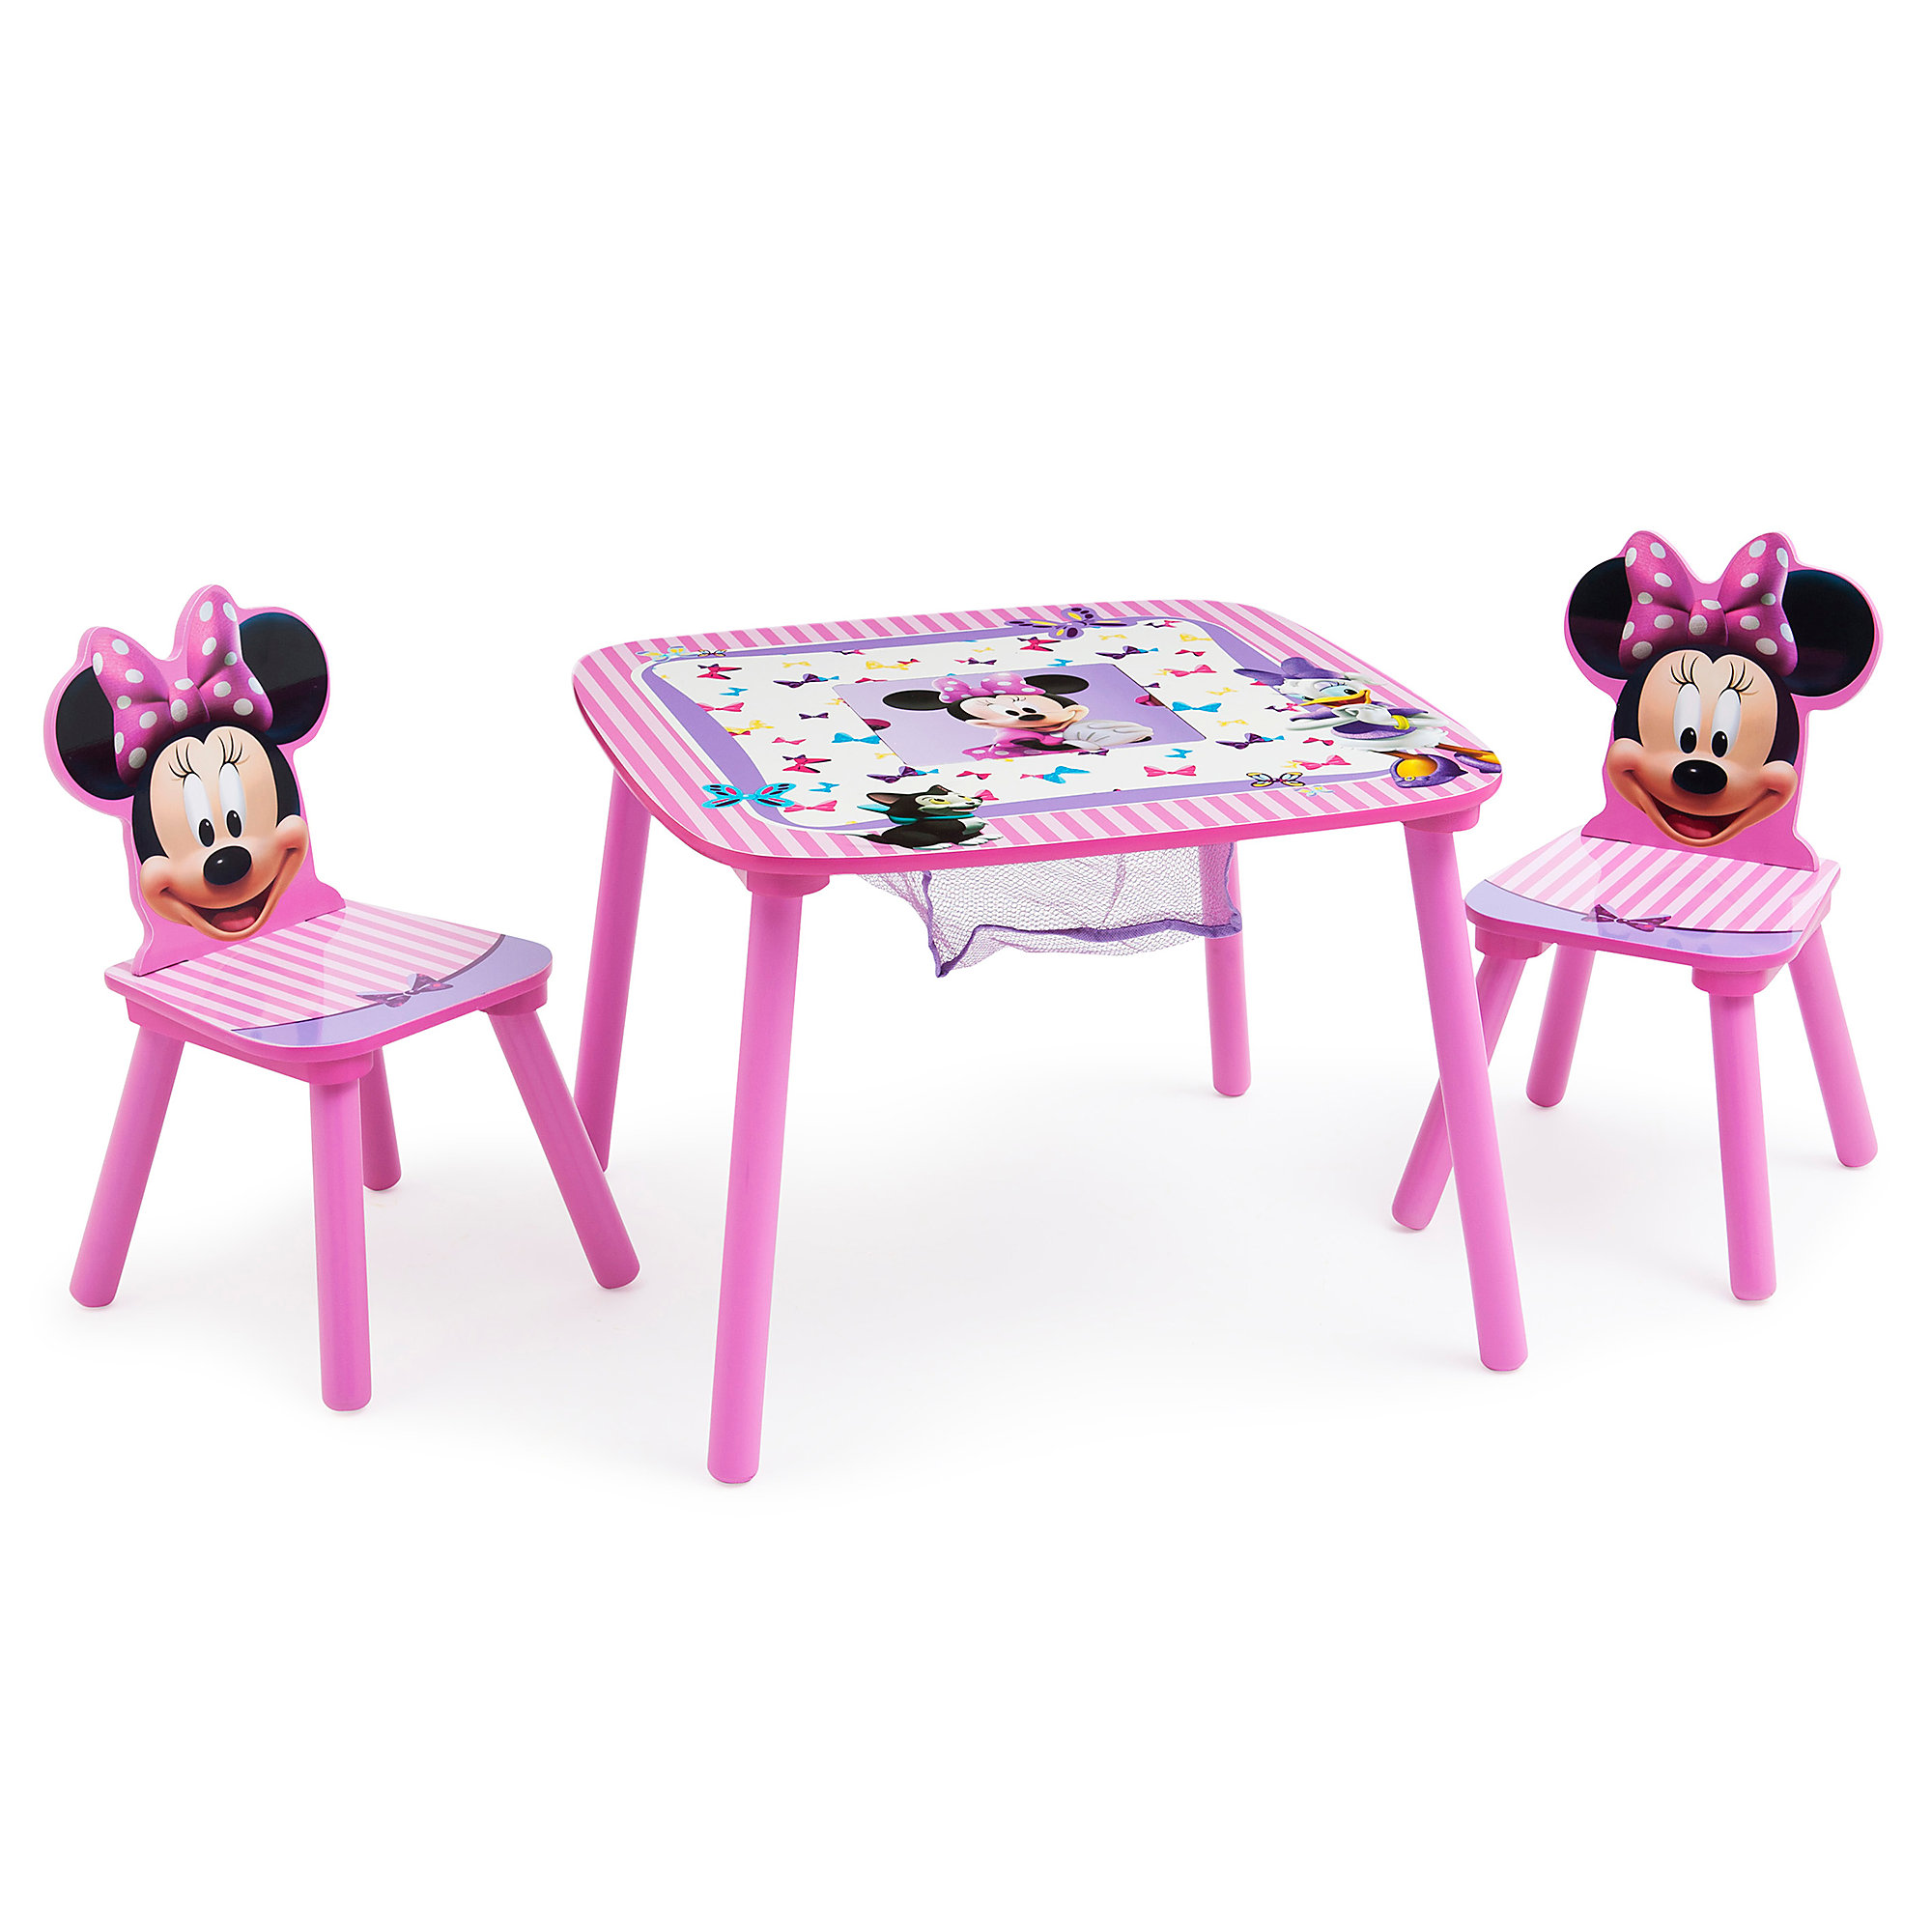 Product Image Of Minnie Mouse Table And Chair Set With Storage # 1